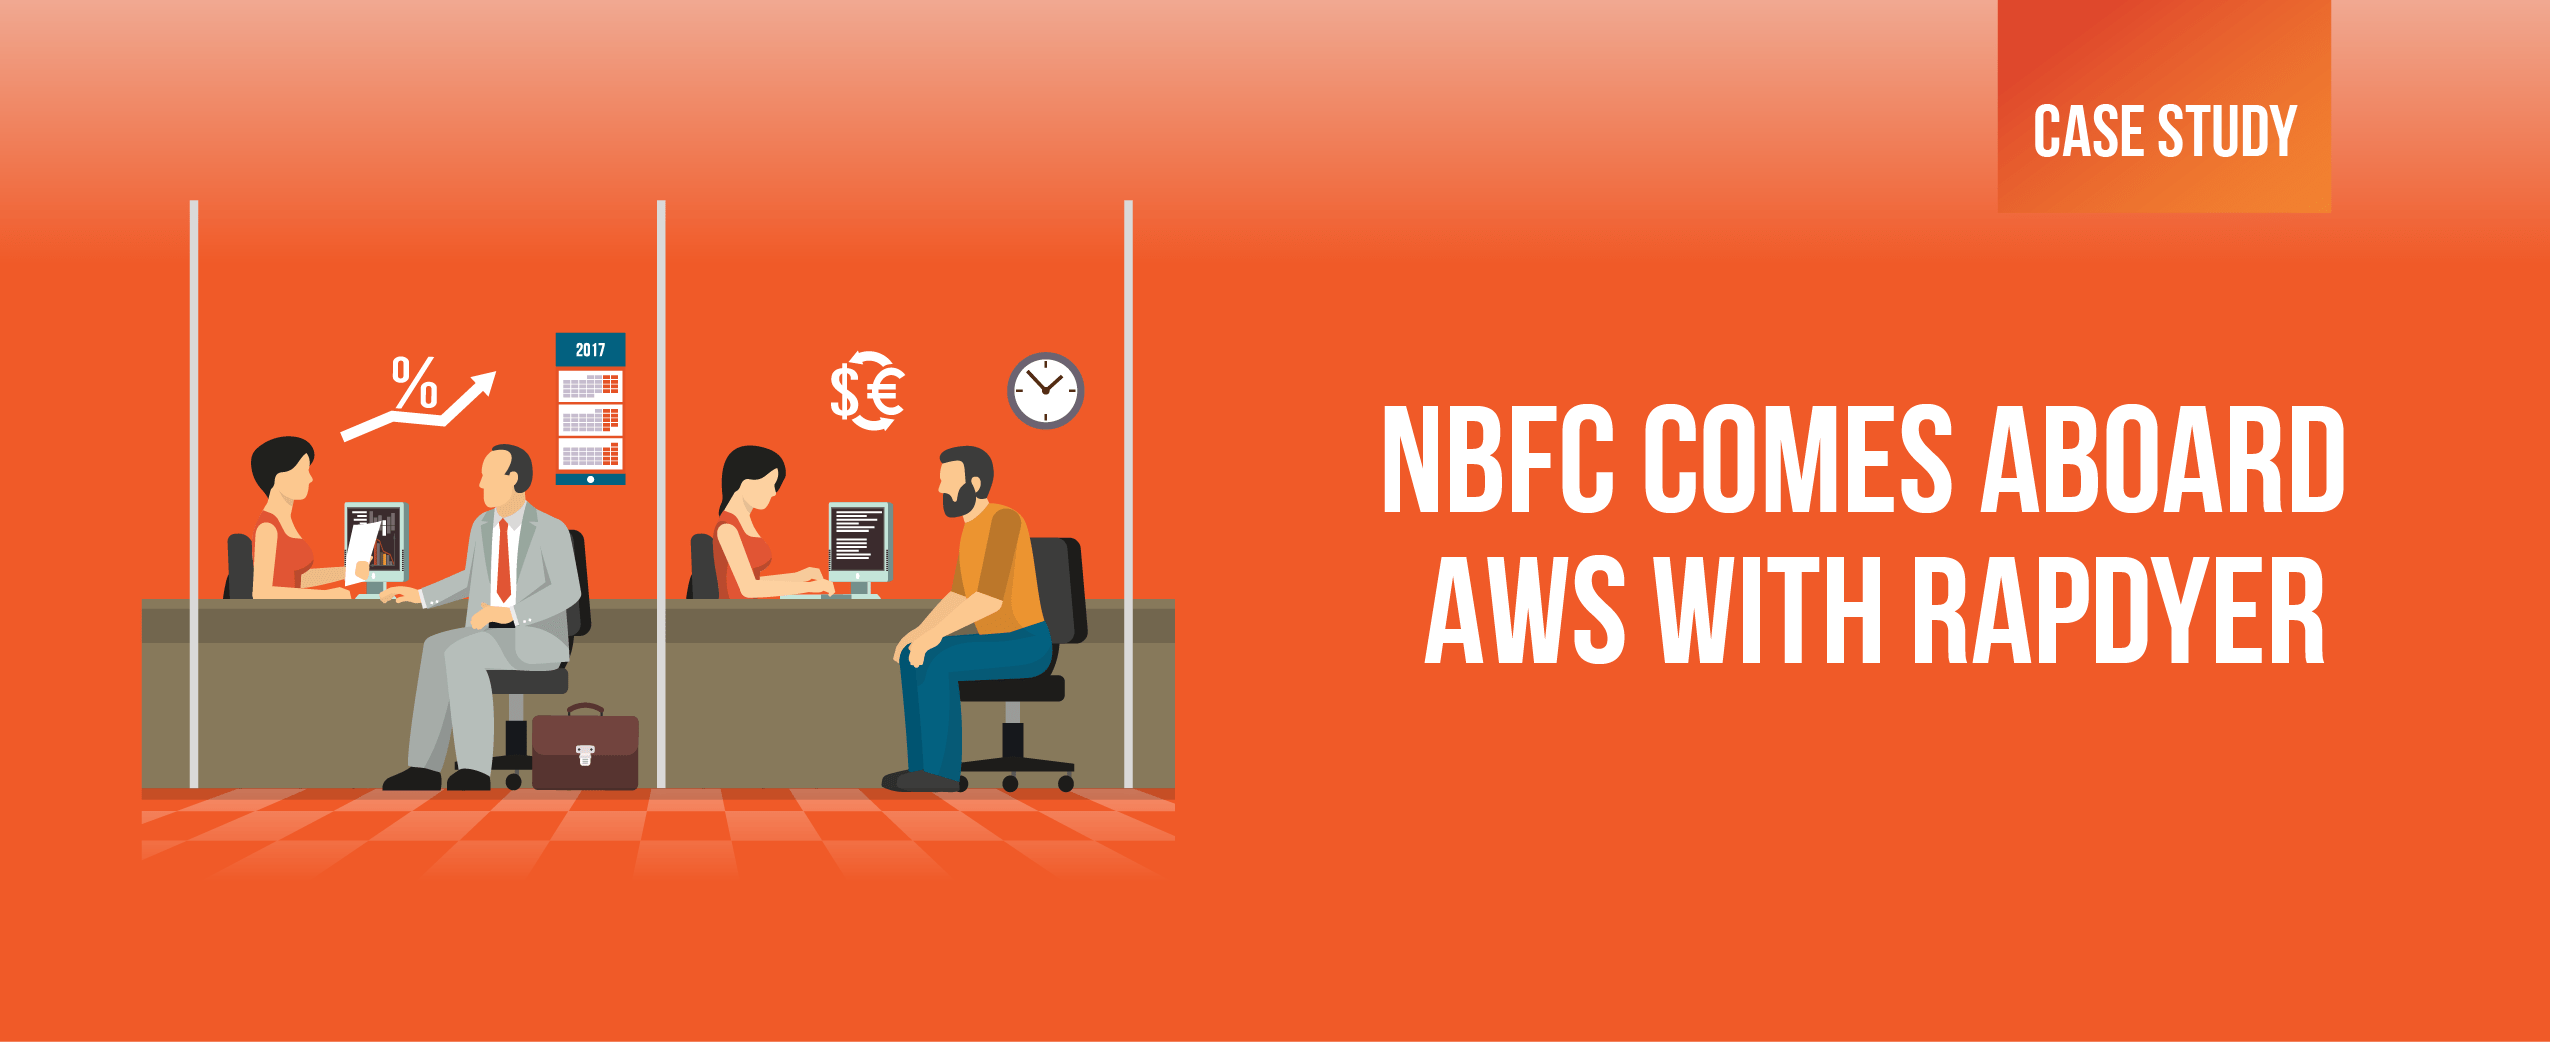 AWS Fintech Case Study NBFC Leverages AWS for Reliable Scalable and Secure Cloud Solutions - NBFC comes aboard AWS  with Rapdyer